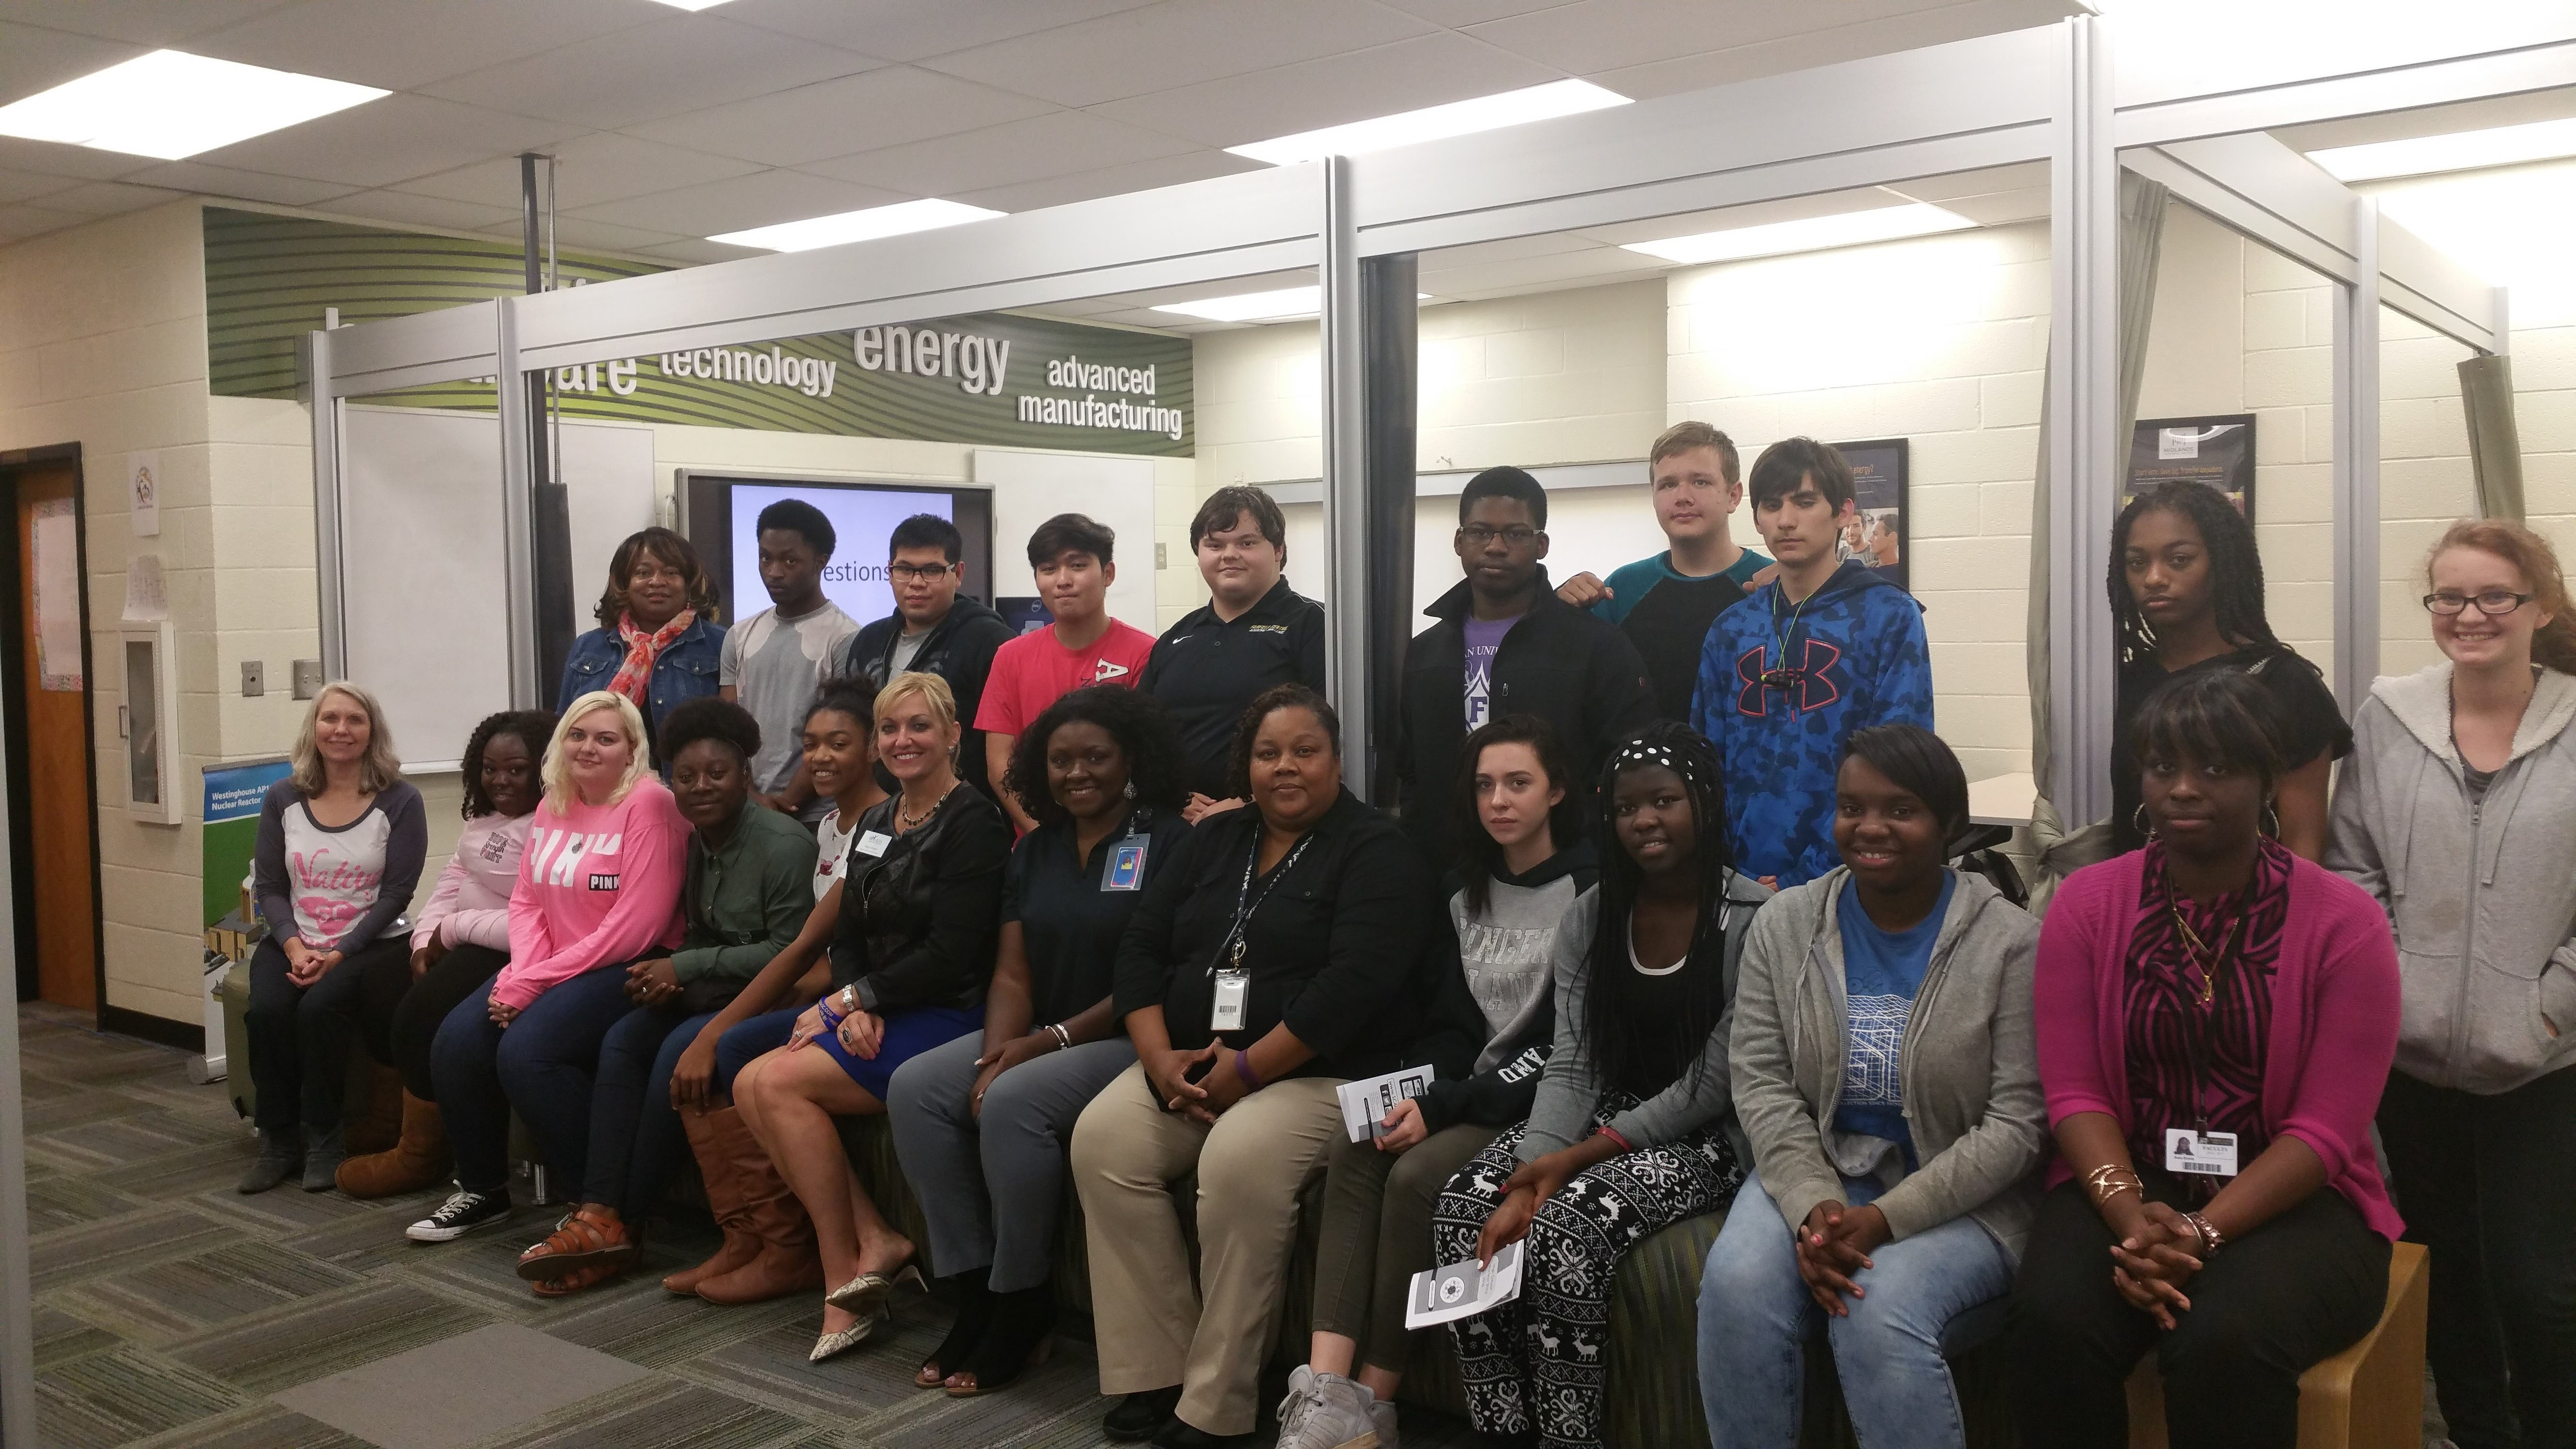 stacey feaster career exploration classroom guidance career connections newsletter focus groups job shadowing virtual job shadowing extended learning